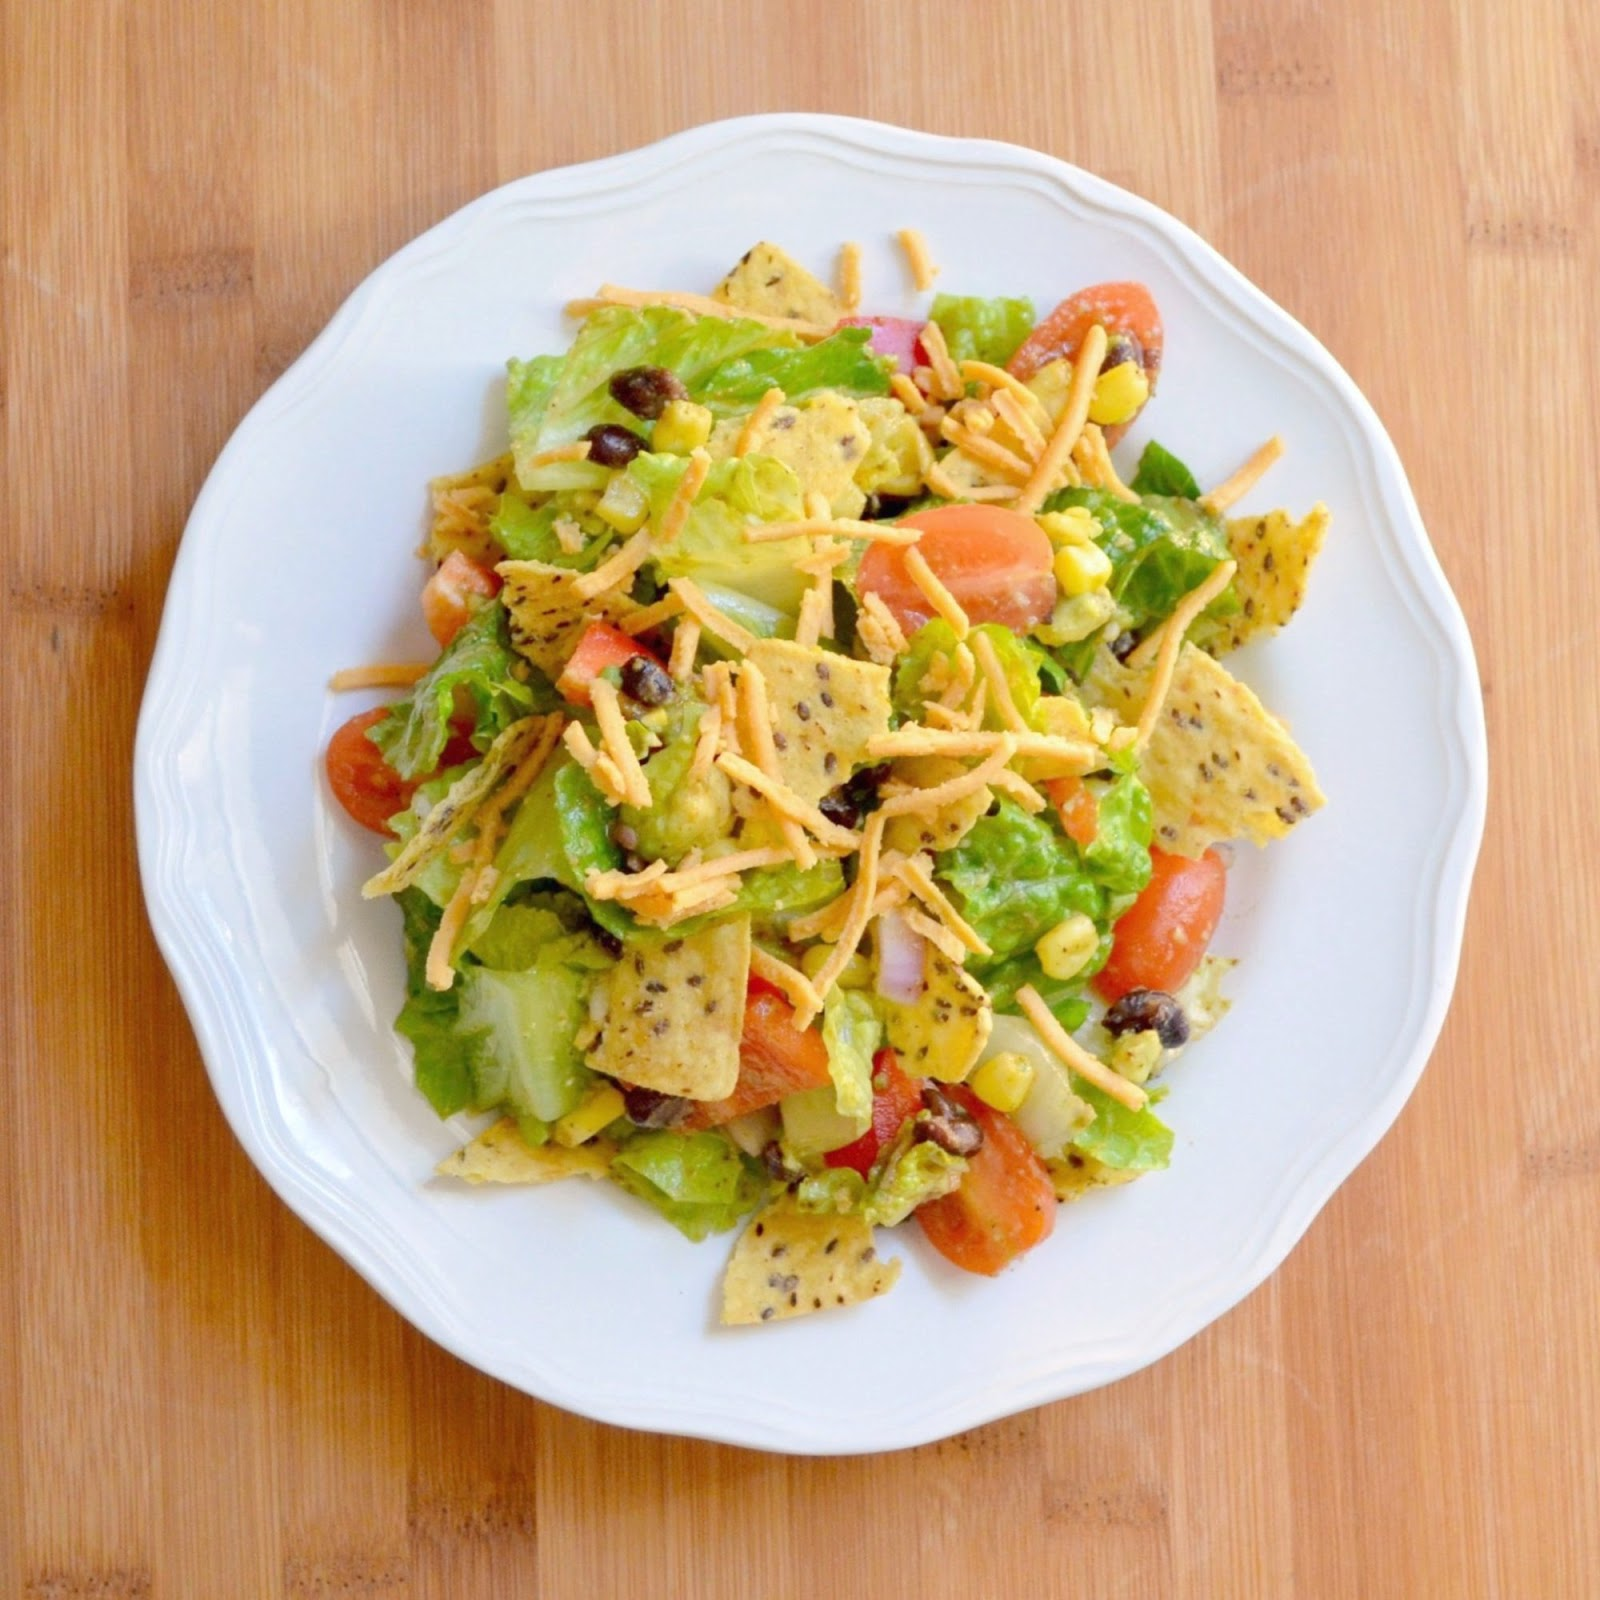 Taco Salad | The Inventive Vegetarian